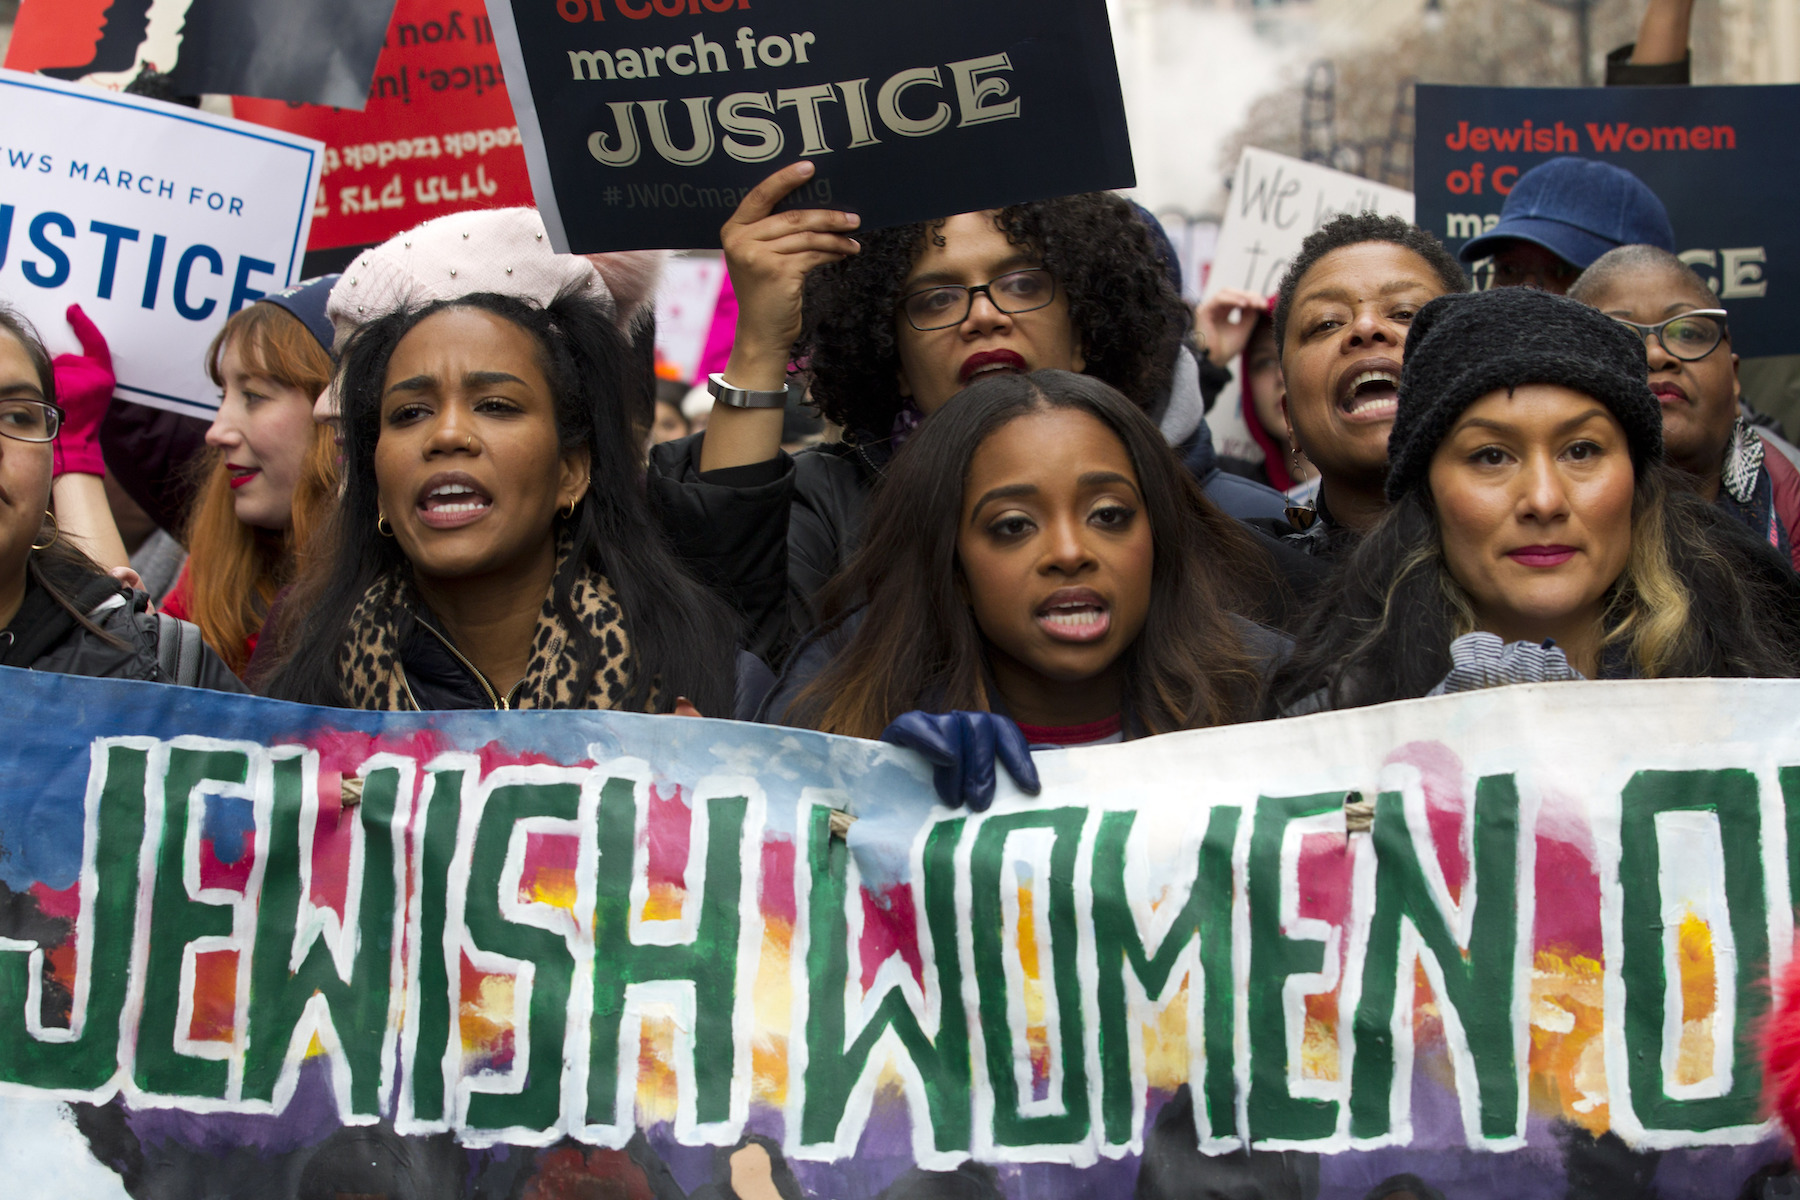 "<div class=""meta image-caption""><div class=""origin-logo origin-image ap""><span>AP</span></div><span class=""caption-text"">Co-president of the 2019 Women's March Tamika Mallory, center, joins other demonstrators on Pennsylvania Avenue during the Women's March in Washington on Saturday, Jan. 19, 2019. (AP Photo/Jose Luis Magana))</span></div>"